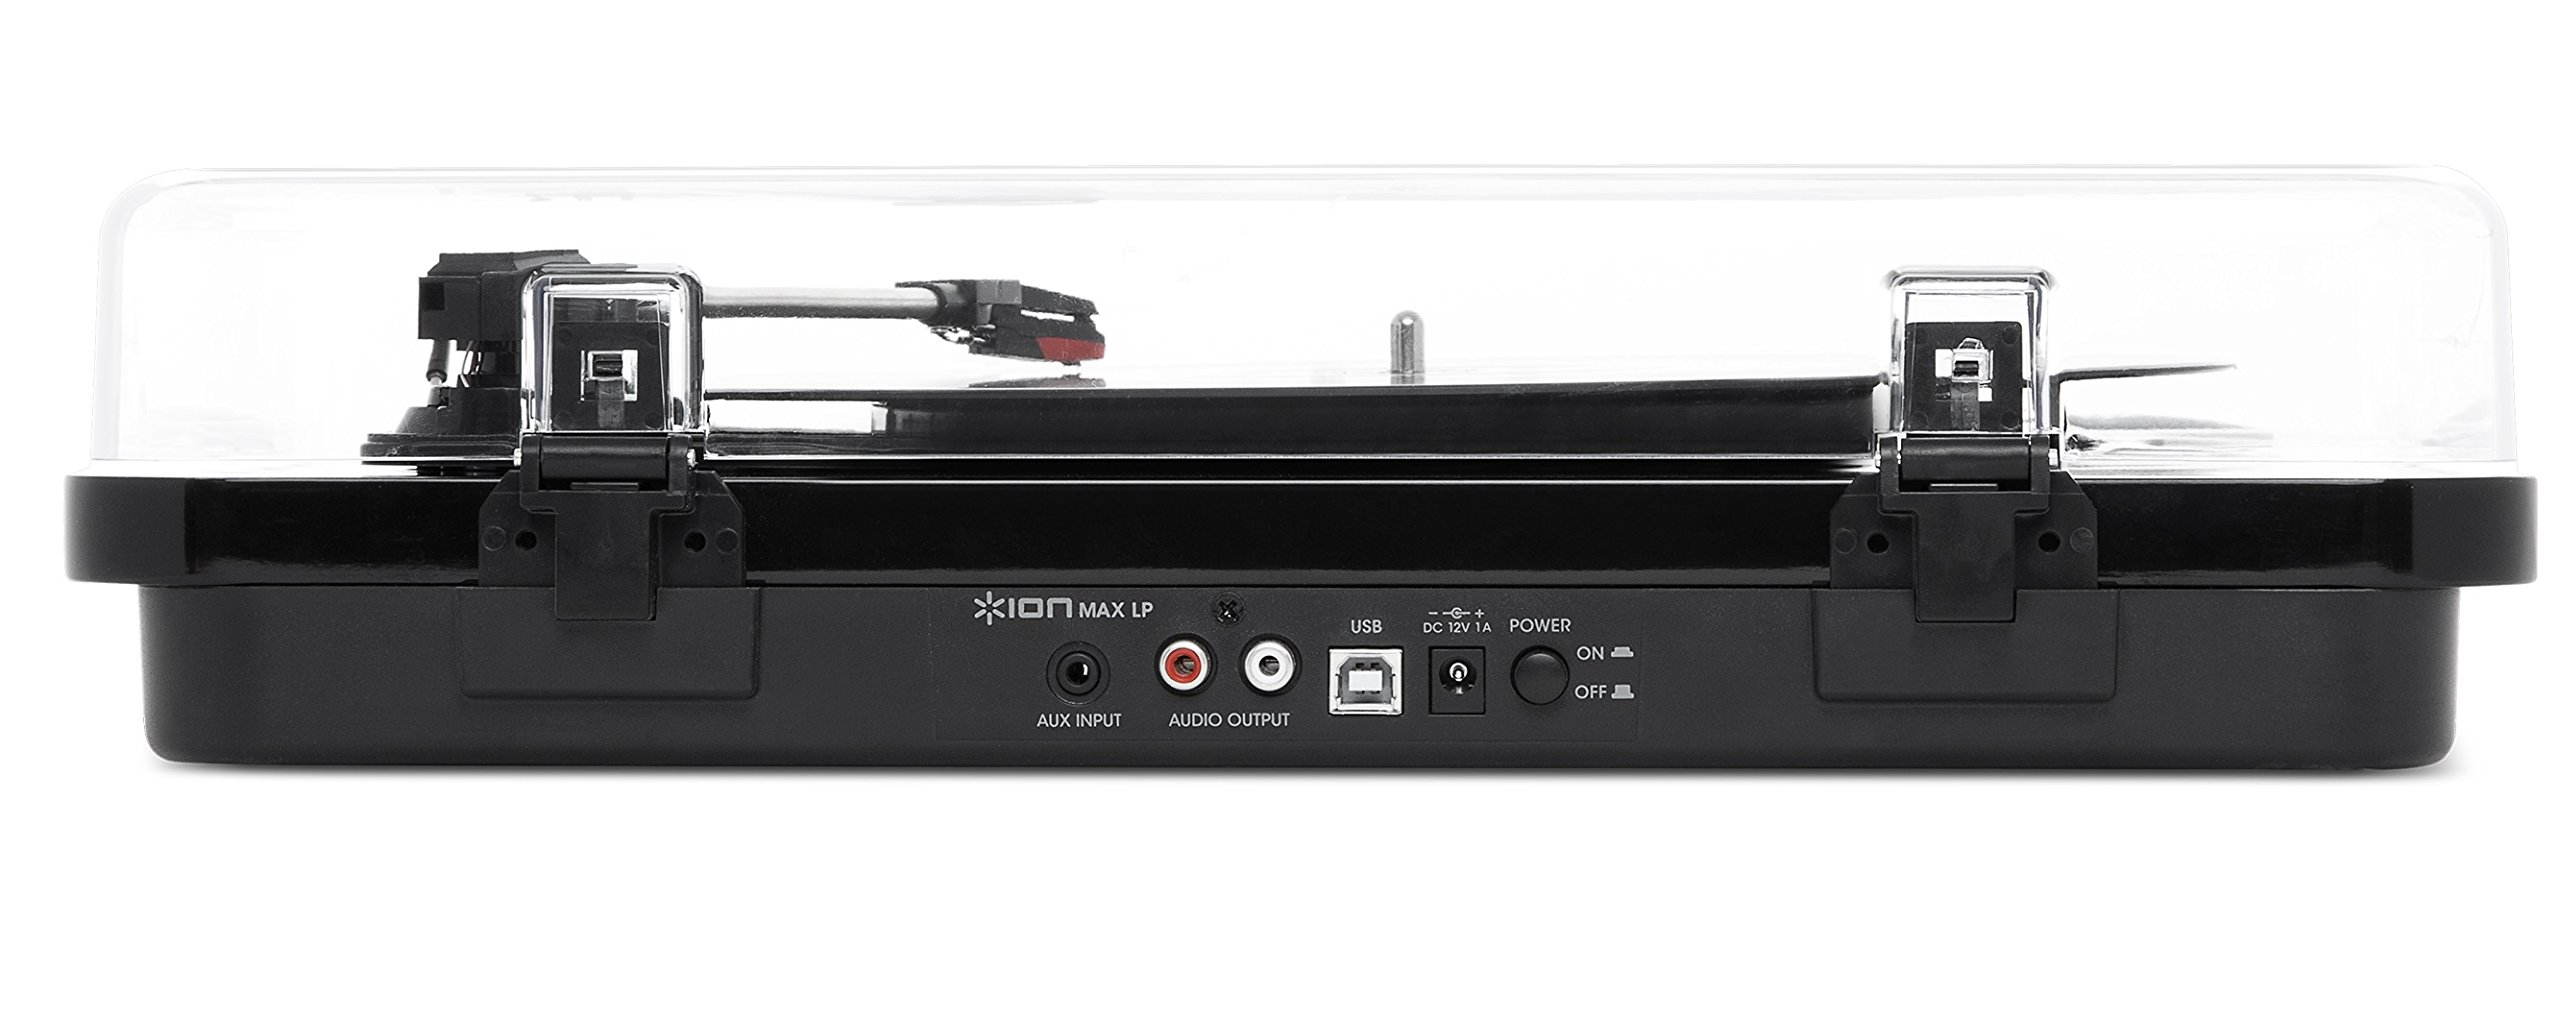 ION Audio Max LP – Three Speed Vinyl Conversion Turntable with Stereo Speakers, USB Output to Convert Vinyl Records to Digital Files and Standard RCA & Headphone Outputs – Piano Black Finish by ION Audio (Image #4)